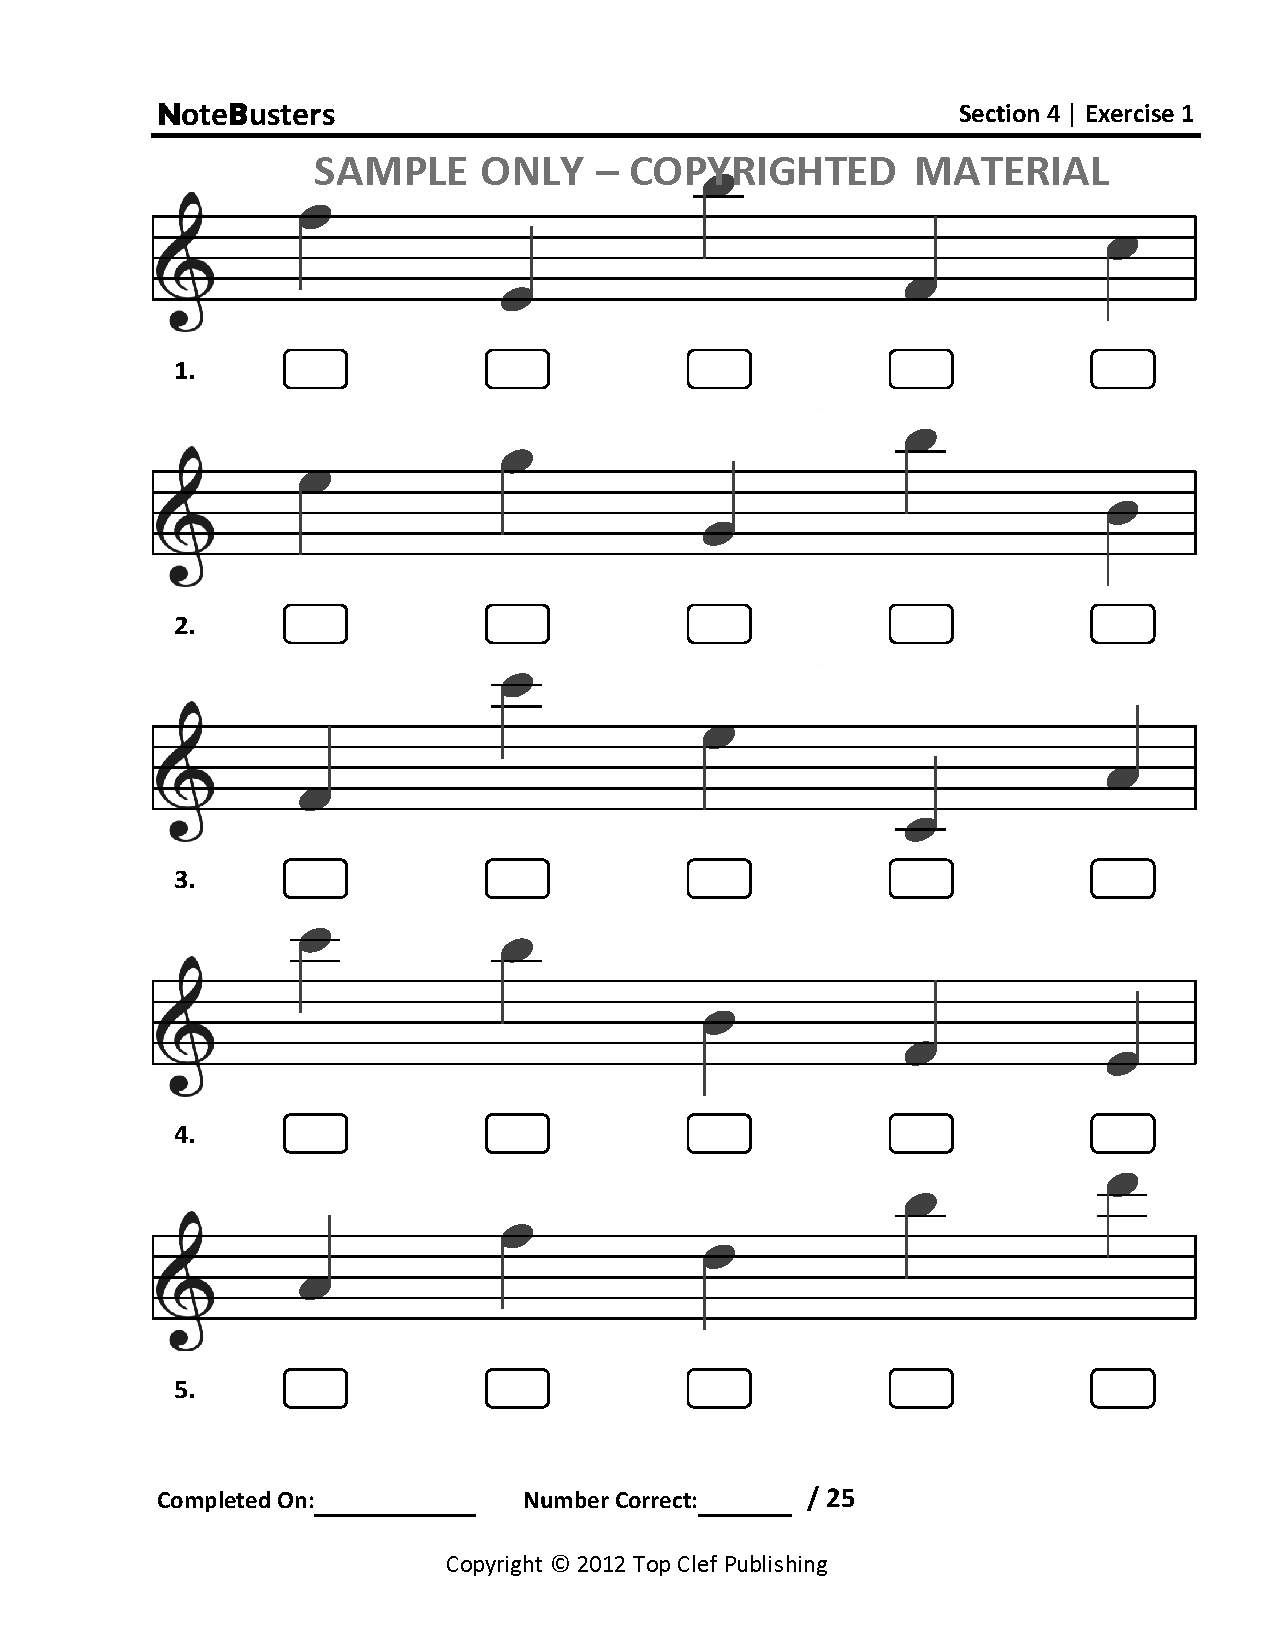 Notebusters Sight Reading Music Workbook Section 4 Sample